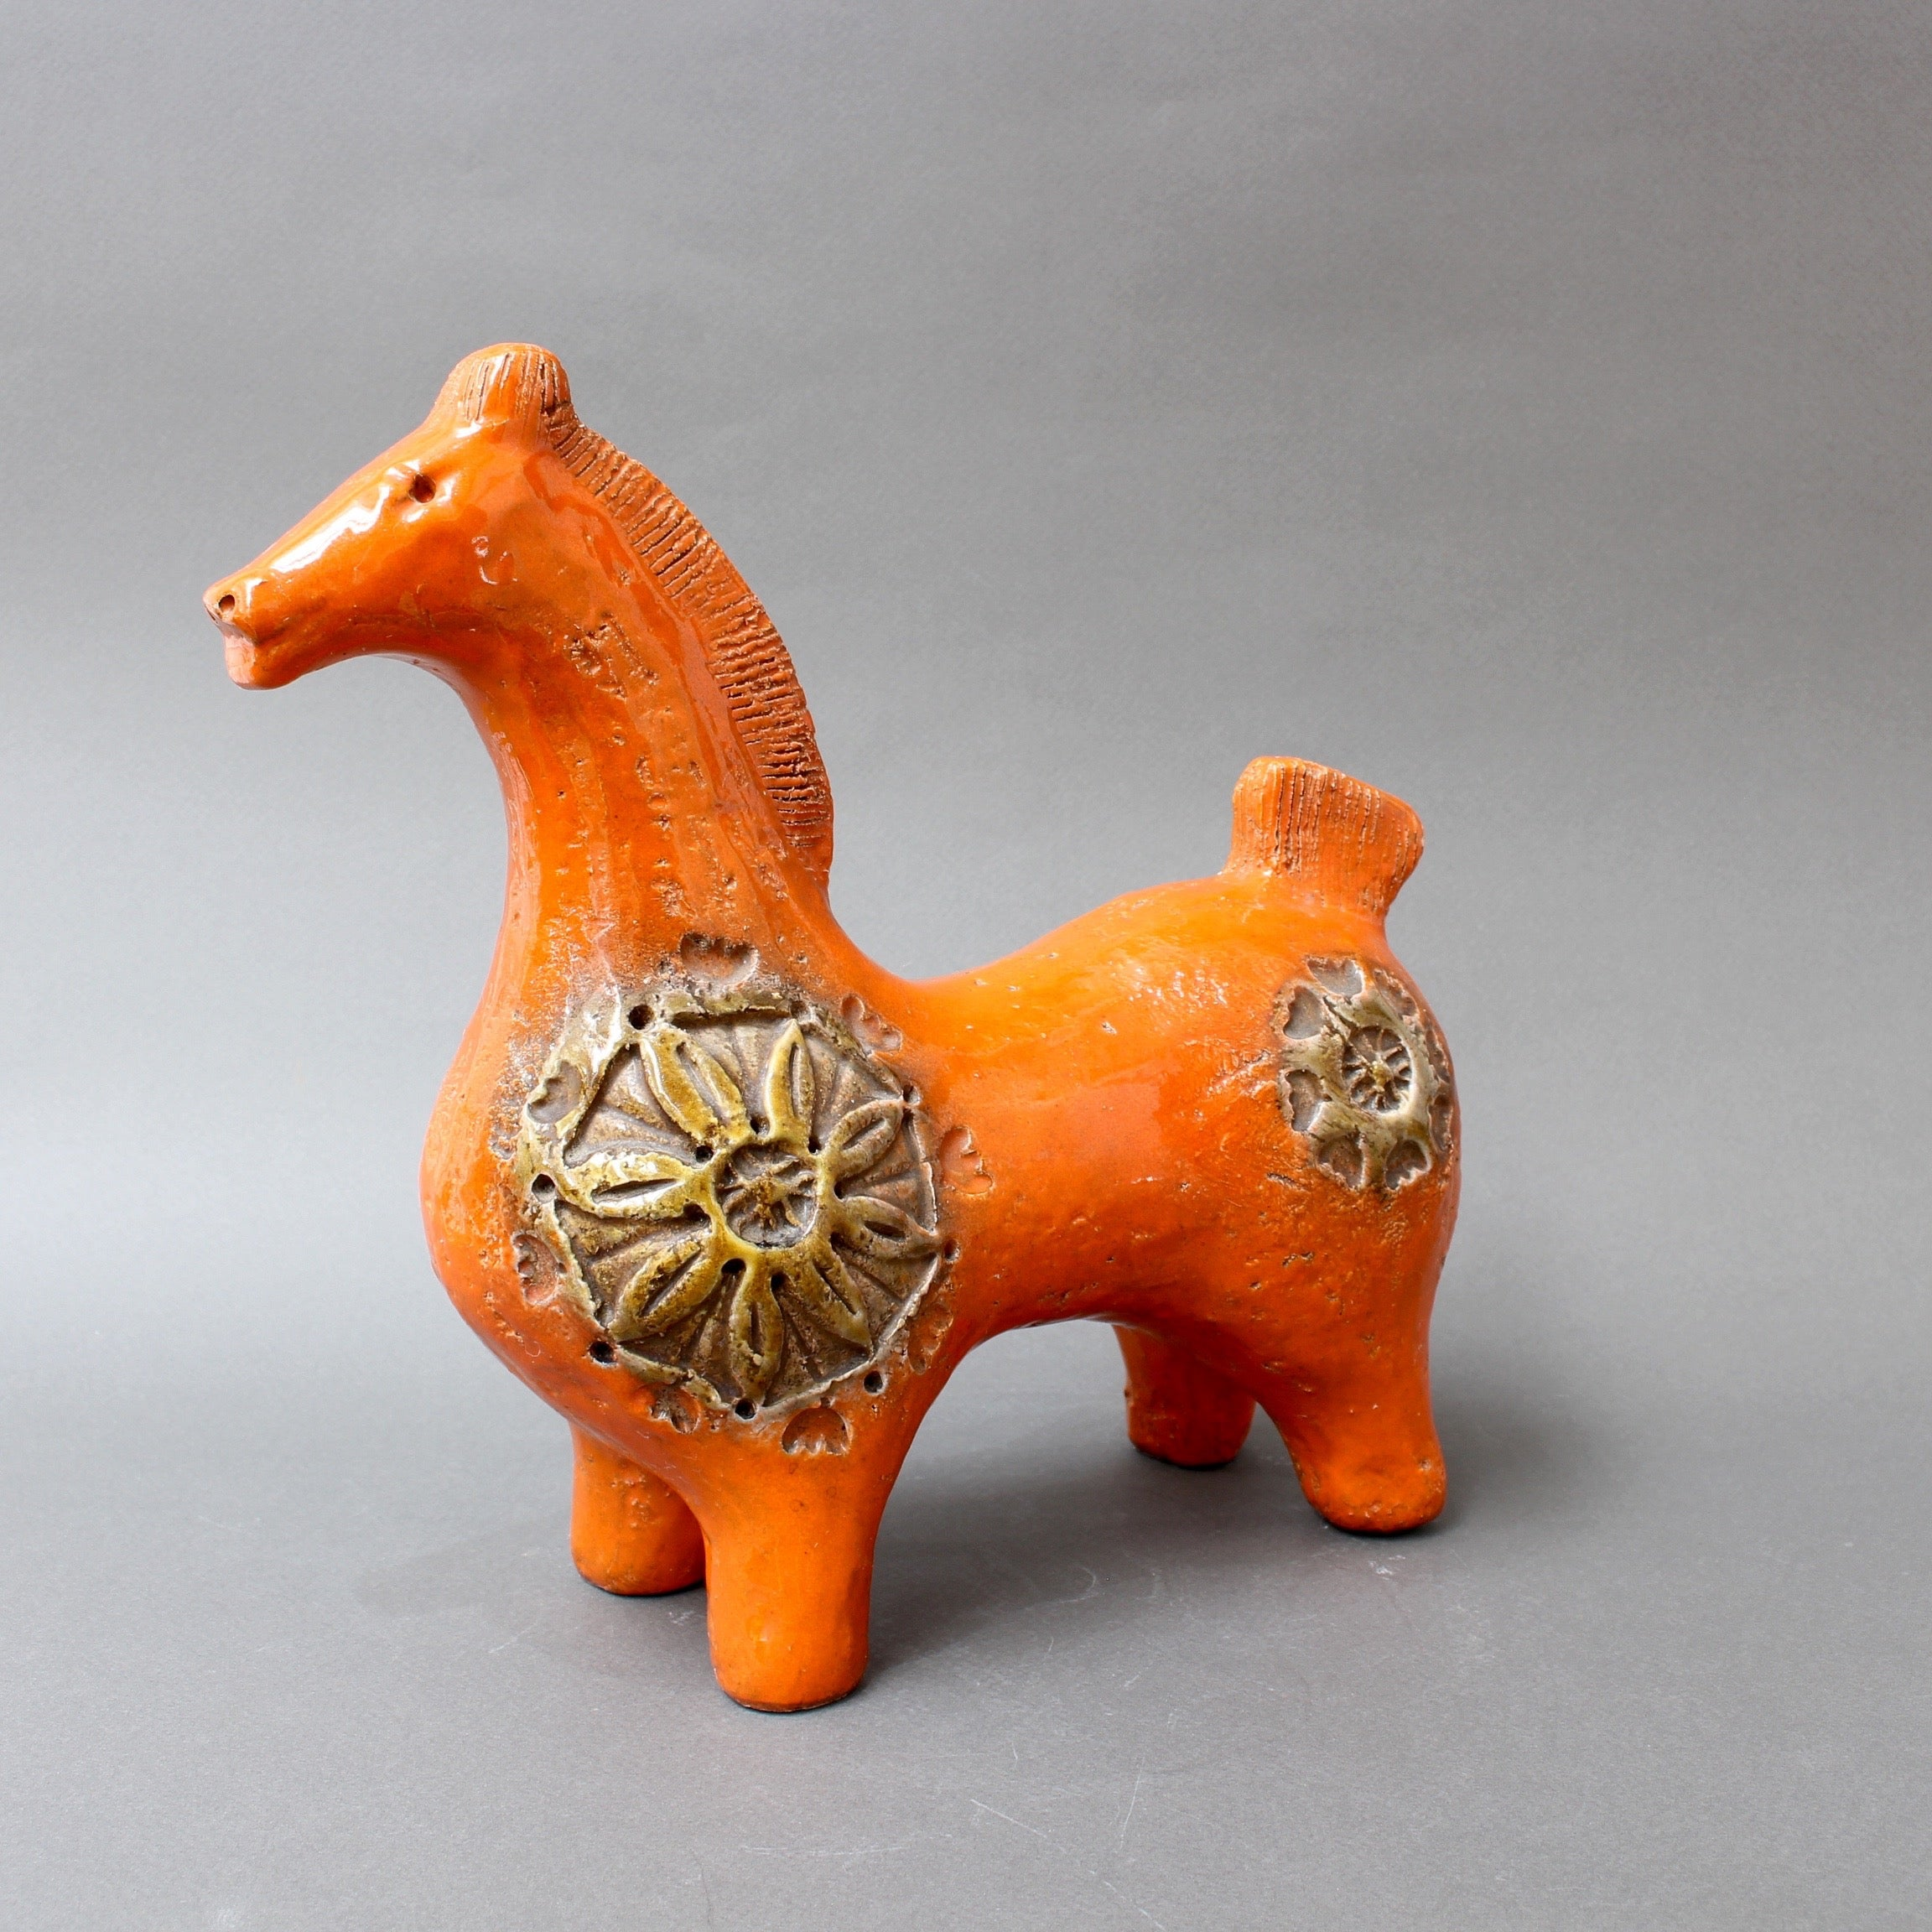 Italian Ceramic Orange Horse by Aldo Londi for Bitossi (circa 1960s)